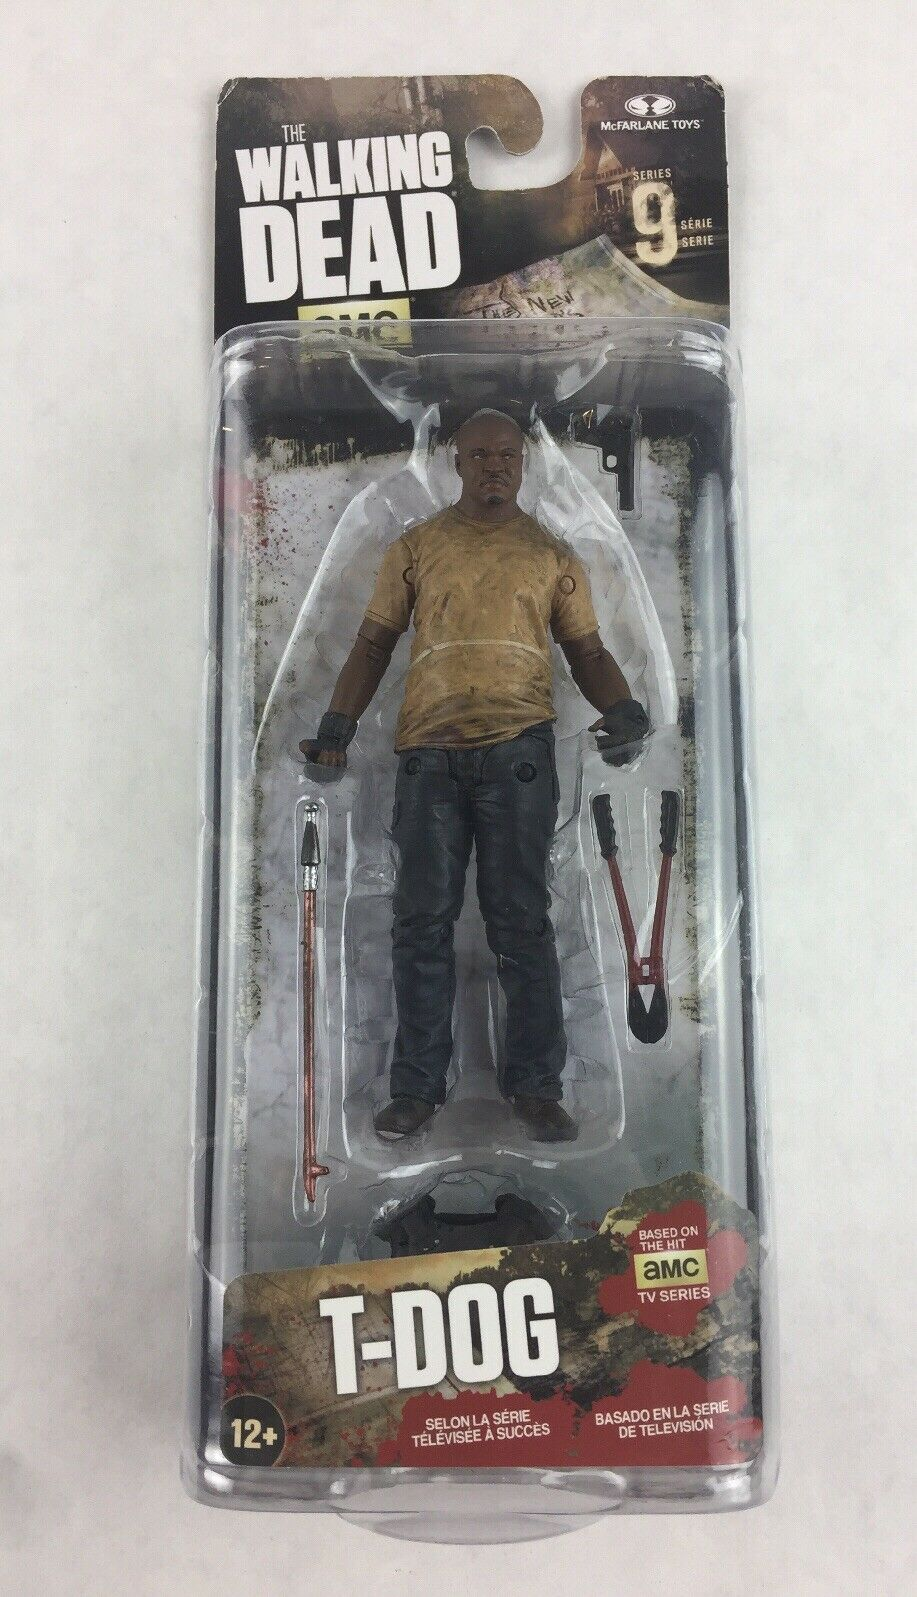 McFarlane Toys The Walking Dead TV Series 9 T-Dog Collectible Action Figure